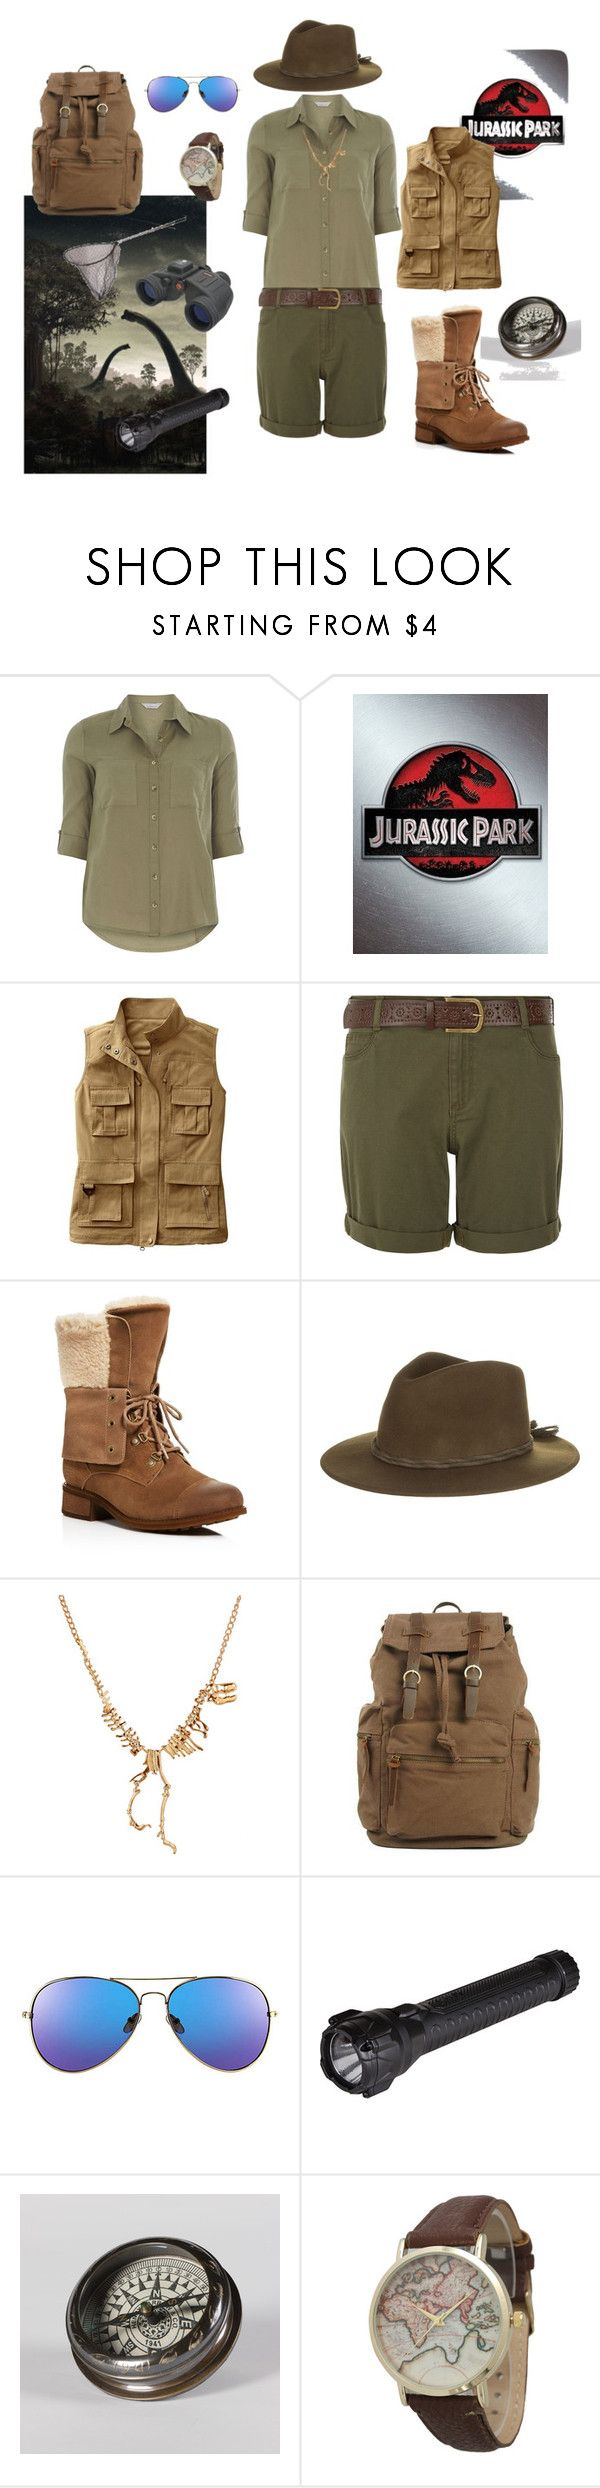 """Jurassic Park Ranger"" by morbidhare on Polyvore featuring Dorothy Perkins, TravelSmith, New Look, UGG, Brixton, Celestron, 5.11 Tactical, Flamant, Geneva and plus size clothing"